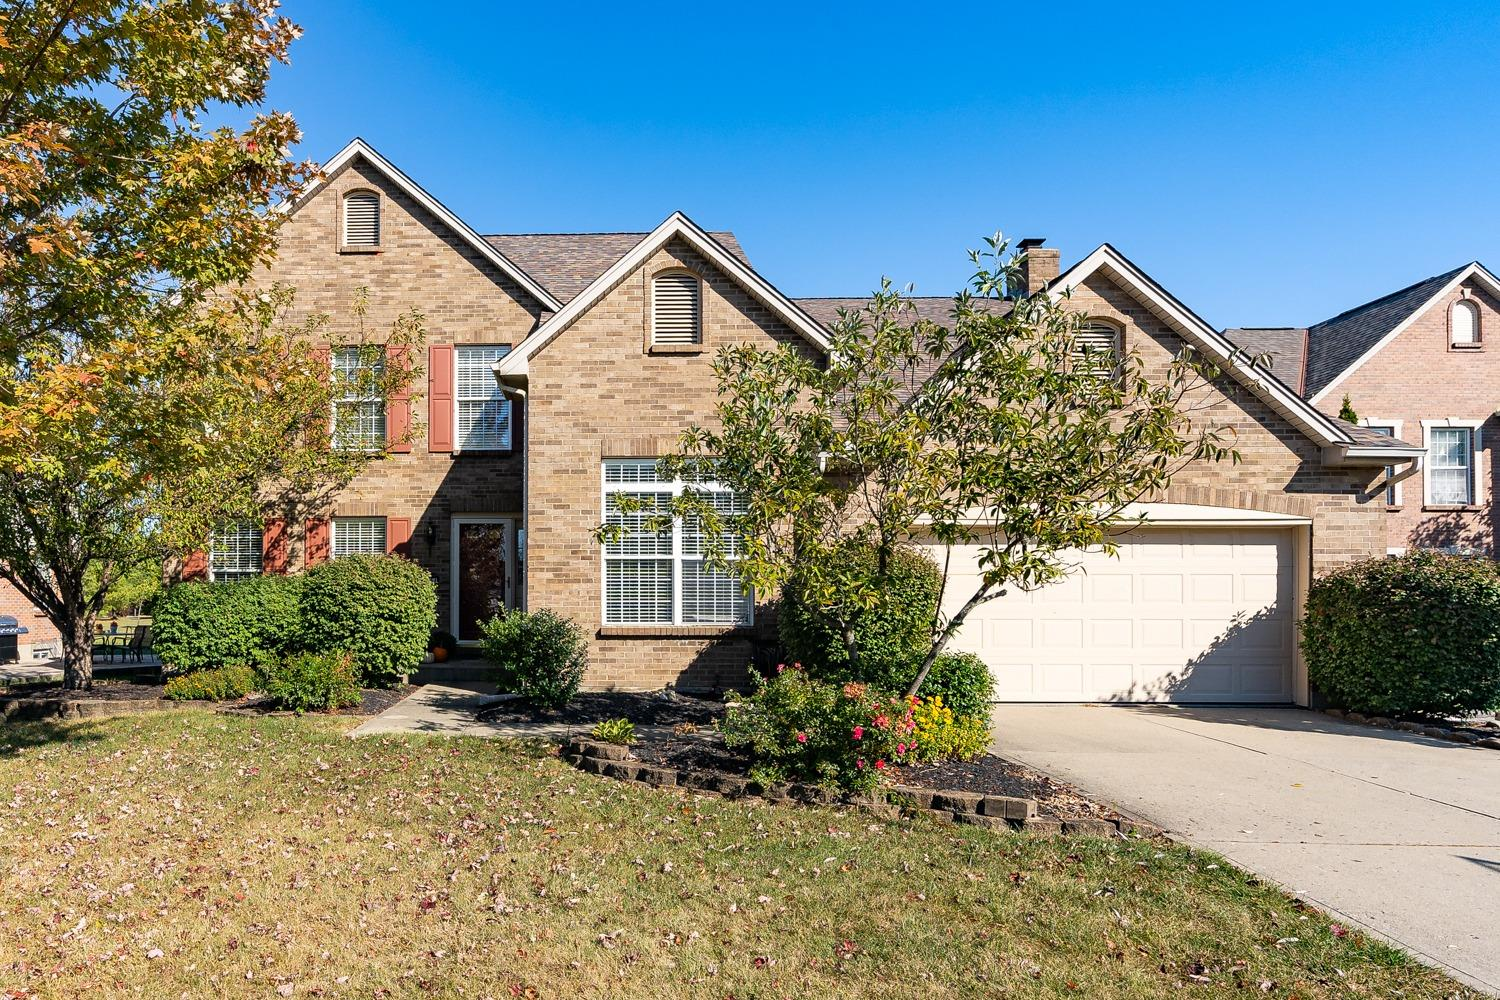 Property for sale at 4064 Fox Hollow Ct, Deerfield Twp.,  Ohio 45040